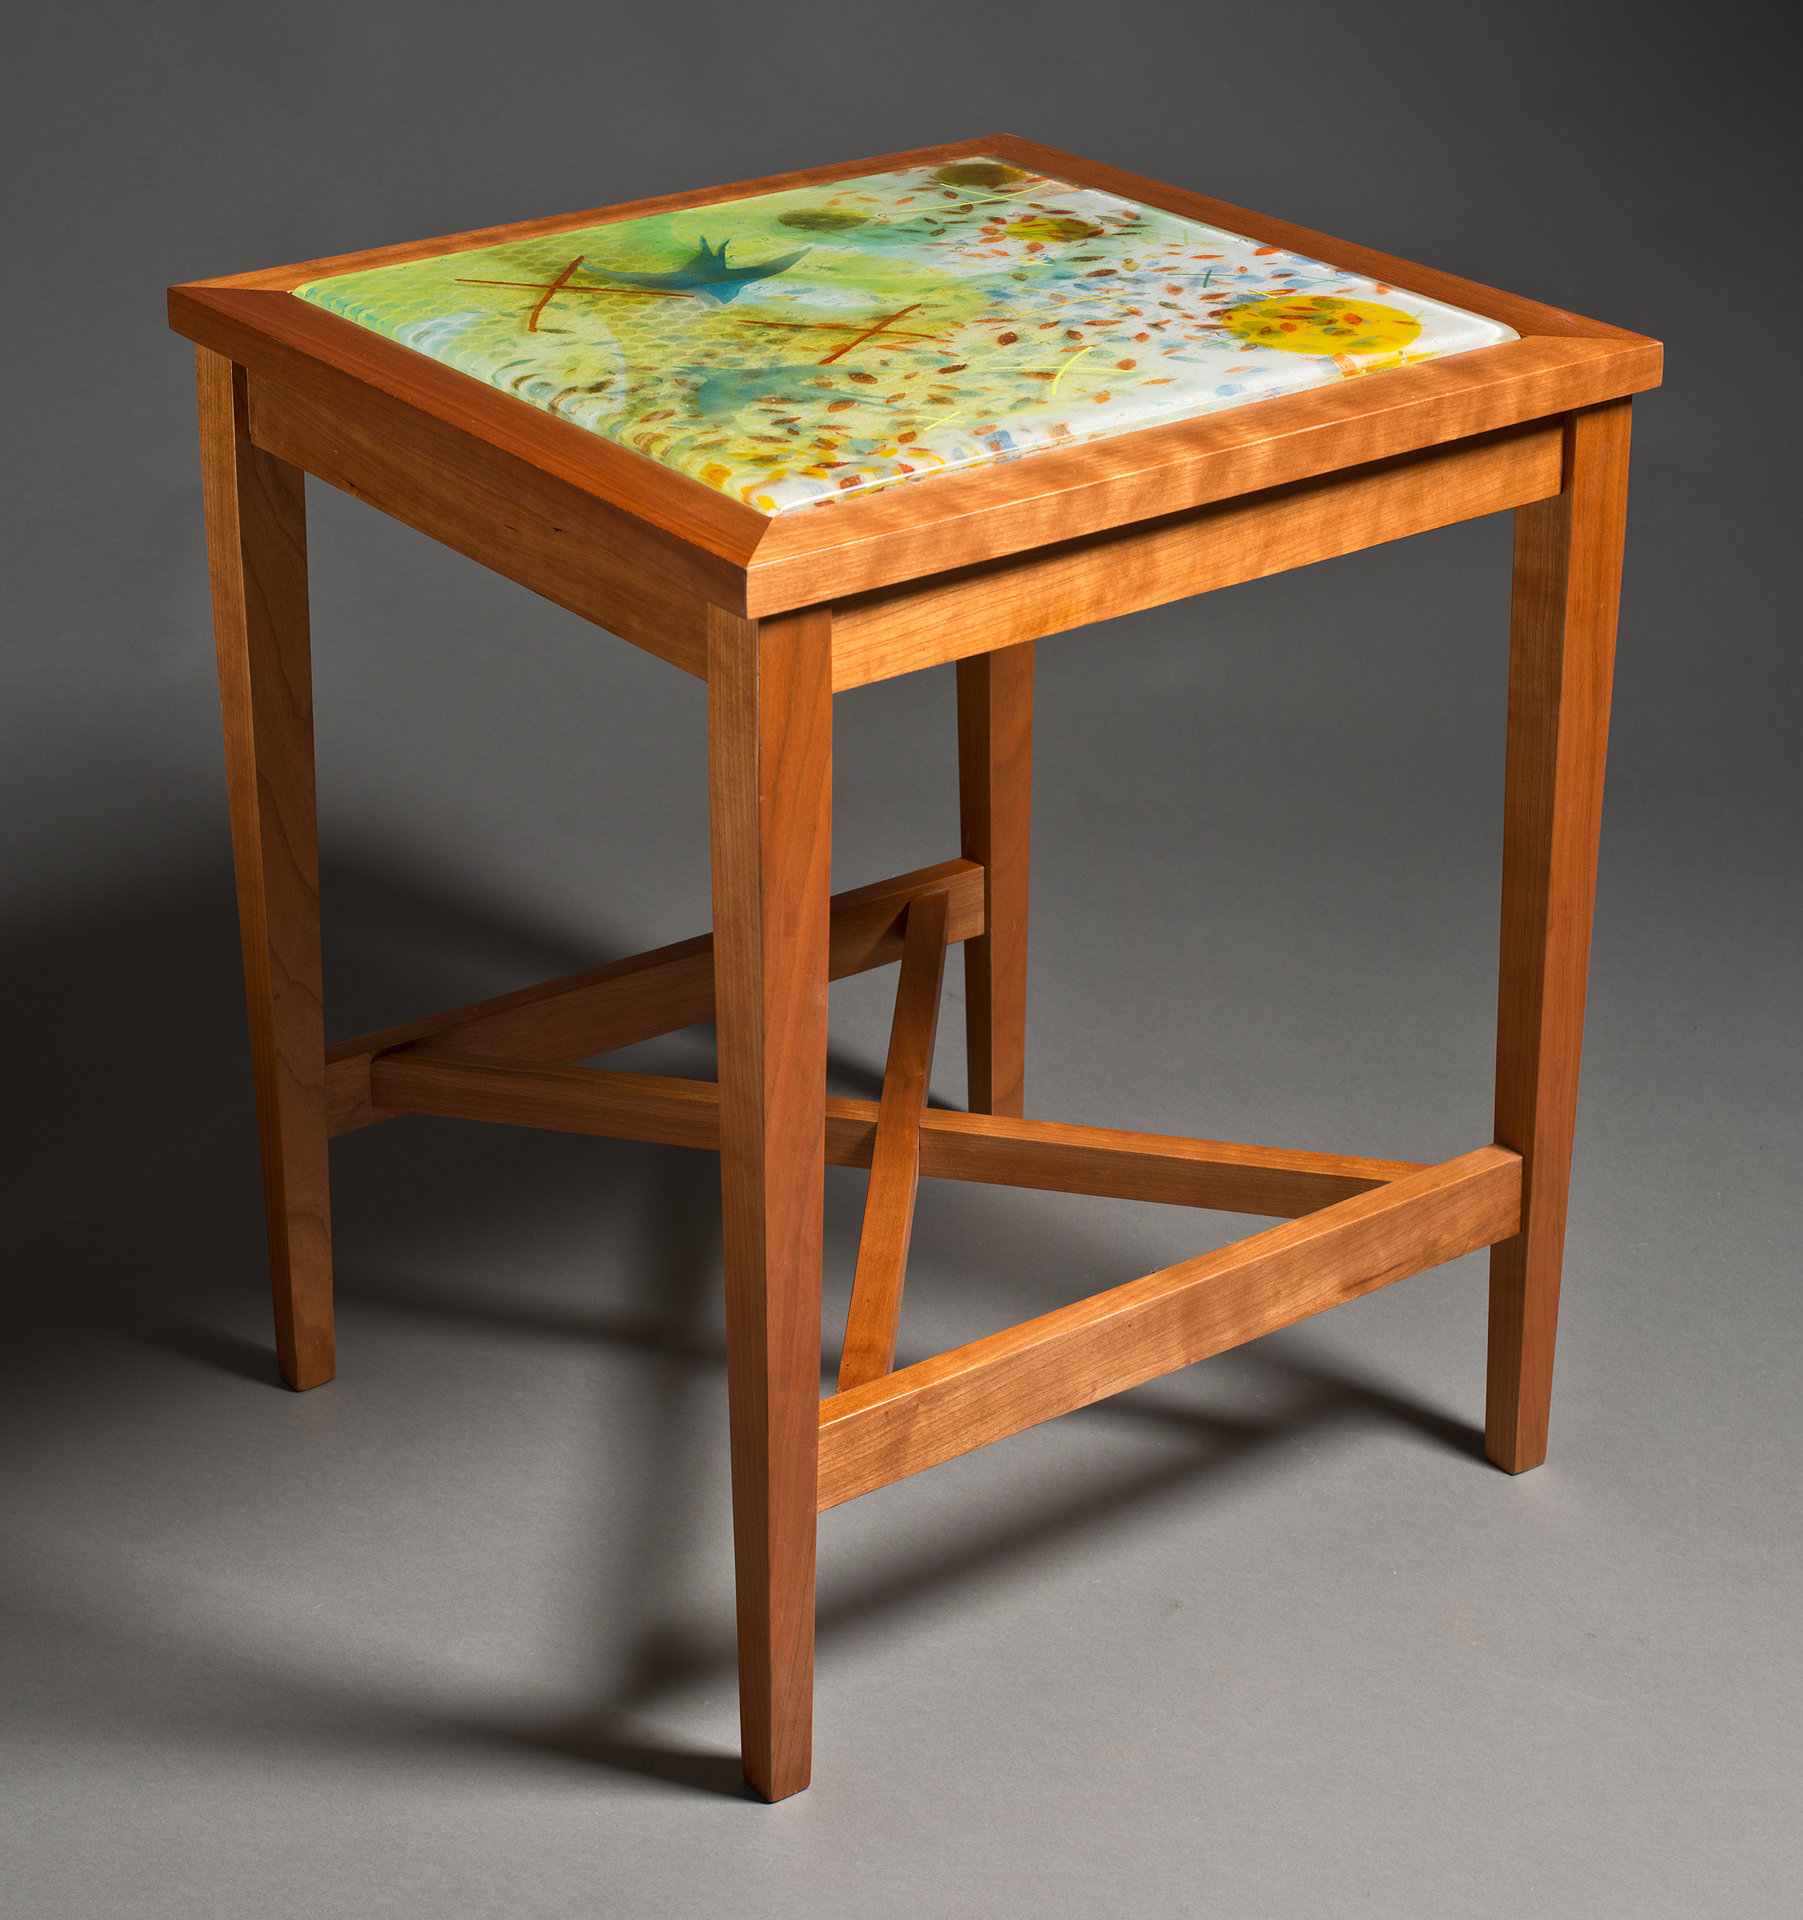 Soaring Swallows Glass Top Table By David Kellum Wood Glass Side Table Artful Home